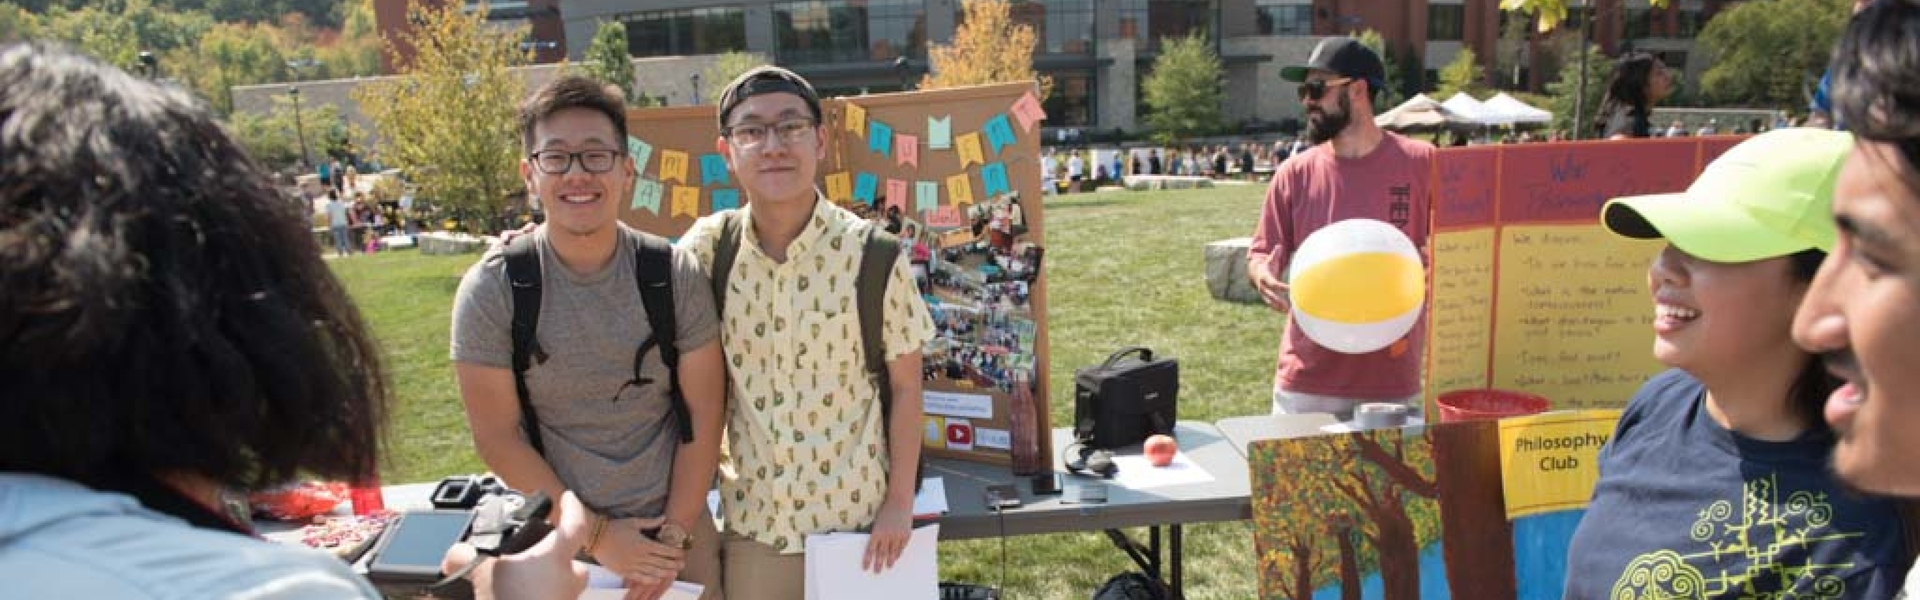 Student groups seek new members at BOB's Fest 2017